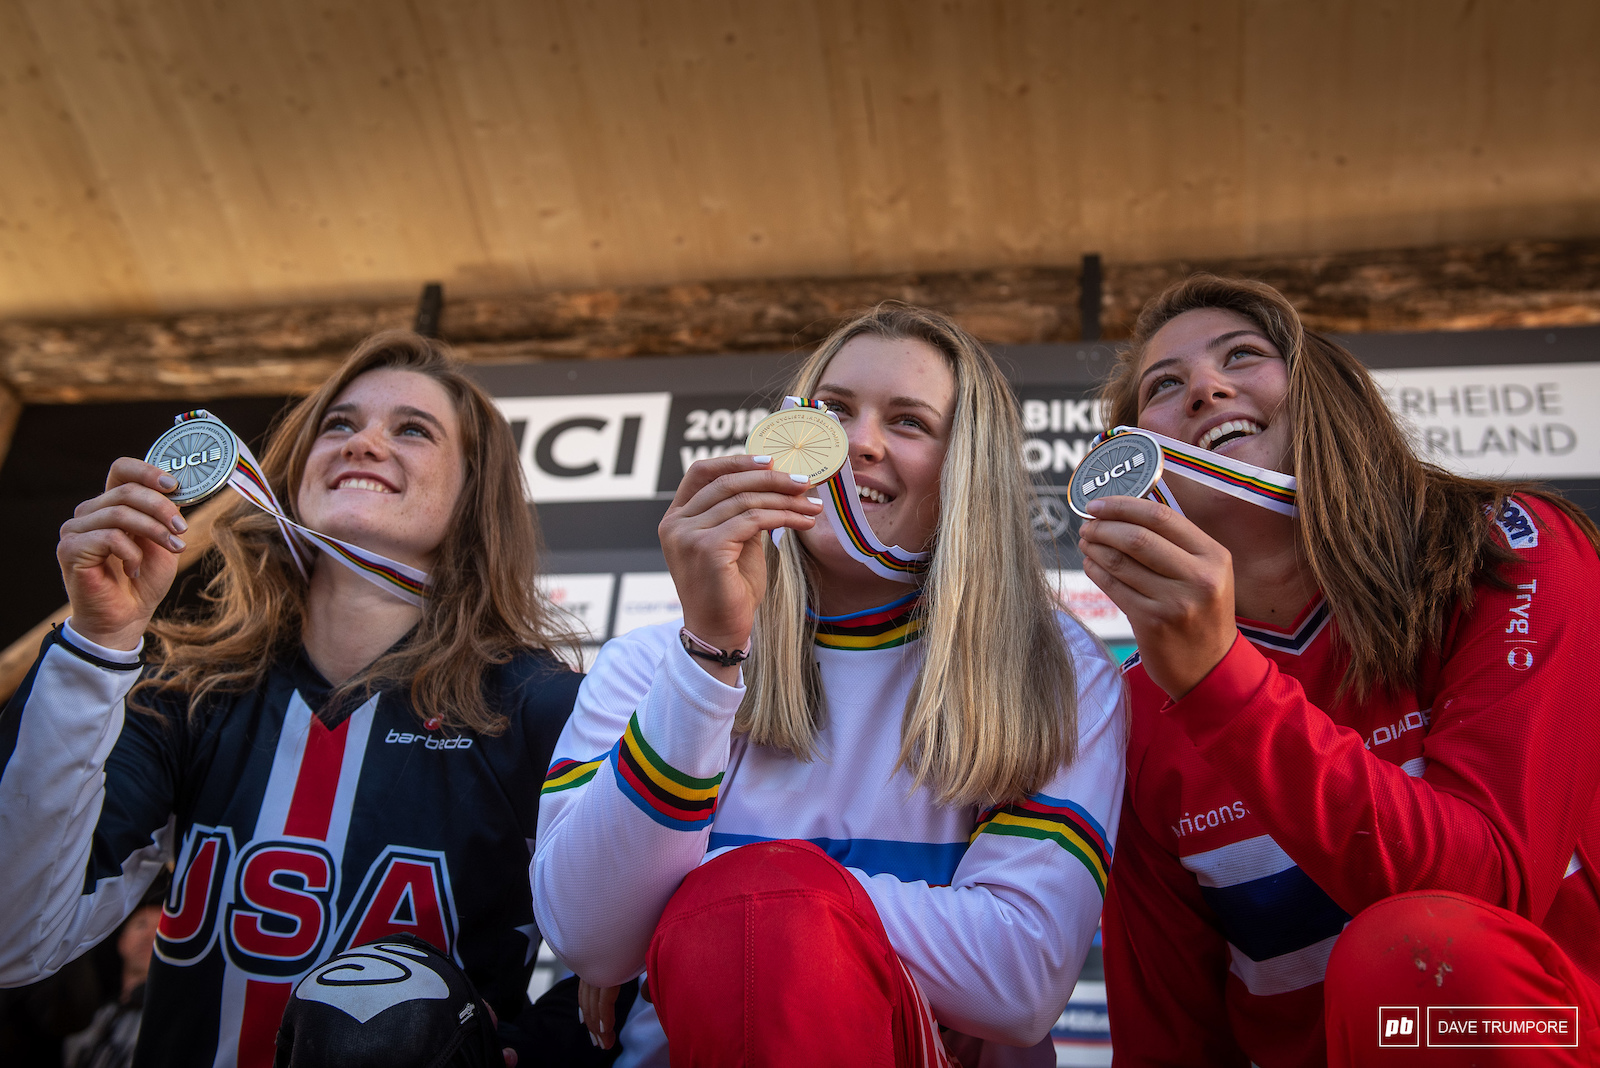 Valle Holl Anna Newkirk and Mille Johnset celebrate gold silver and bronze in Junior women.